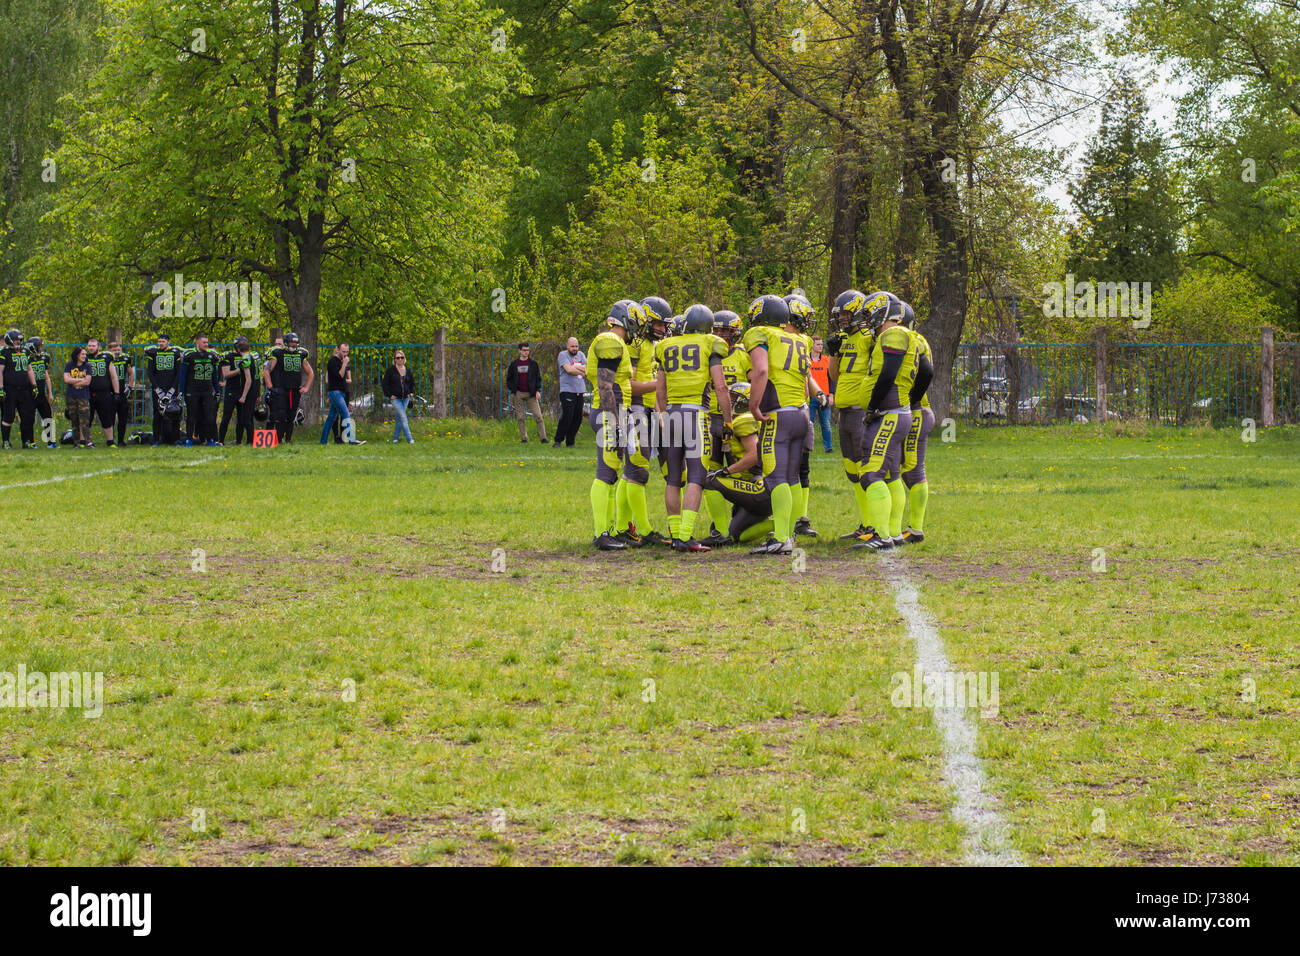 Players in a Huddle During American Football Match - Stock Image